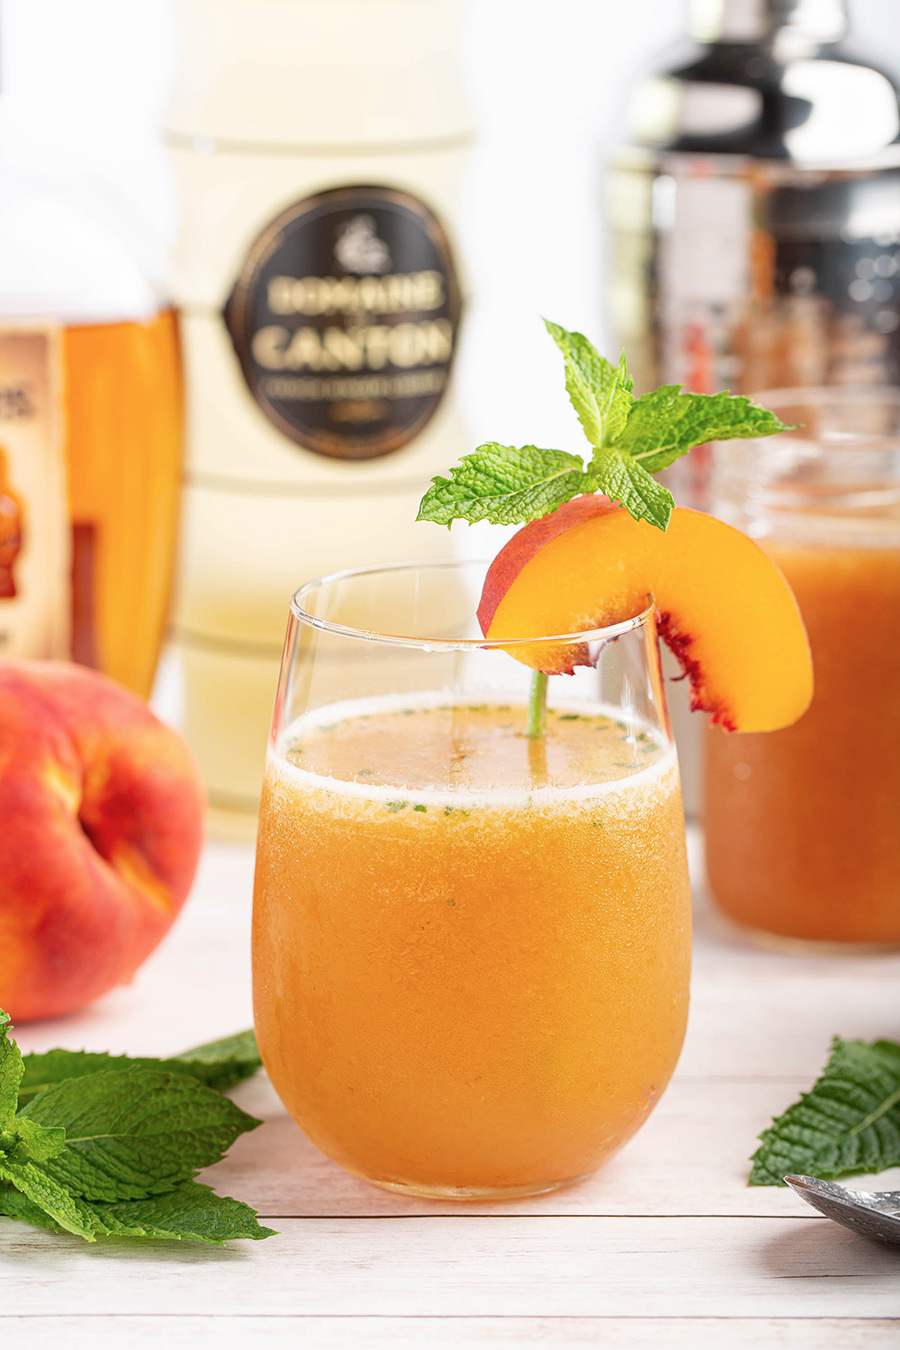 Peach Ginger Bourbon Cocktail | This is the one drink for the end of summer. Fresh peaches, mint, ginger liqueur & bourbon. Sweet & great flavors! #peach #gingerliqueur #mint #bourbon #cocktail #summerrecipe #alcohol #drink | The Missing Lokness